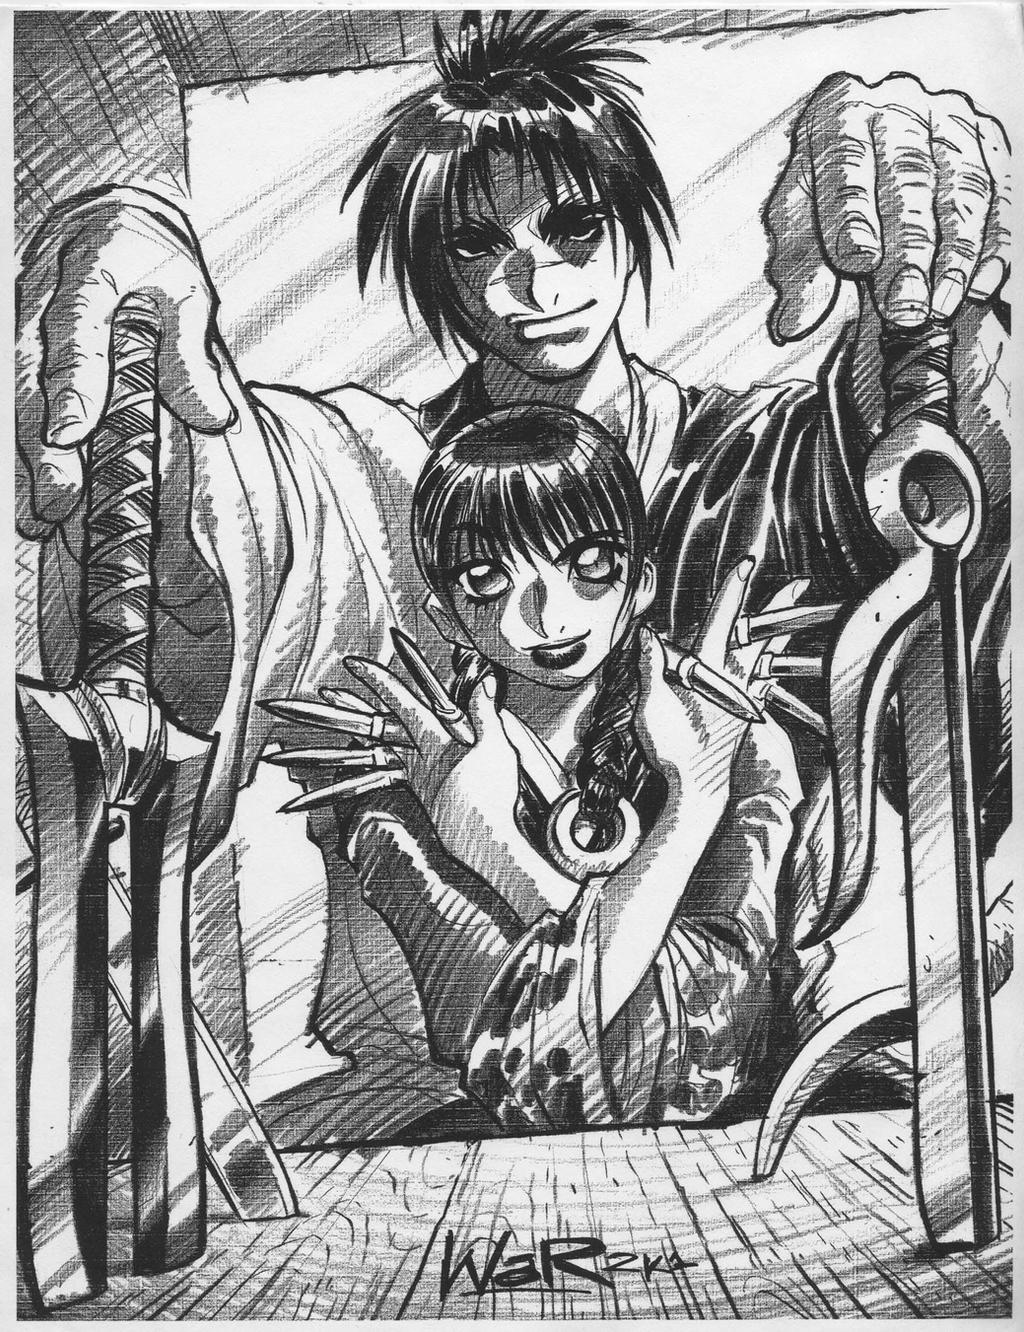 BLADE OF THE IMMORTAL sketch, circa 2001 by AdamWarren